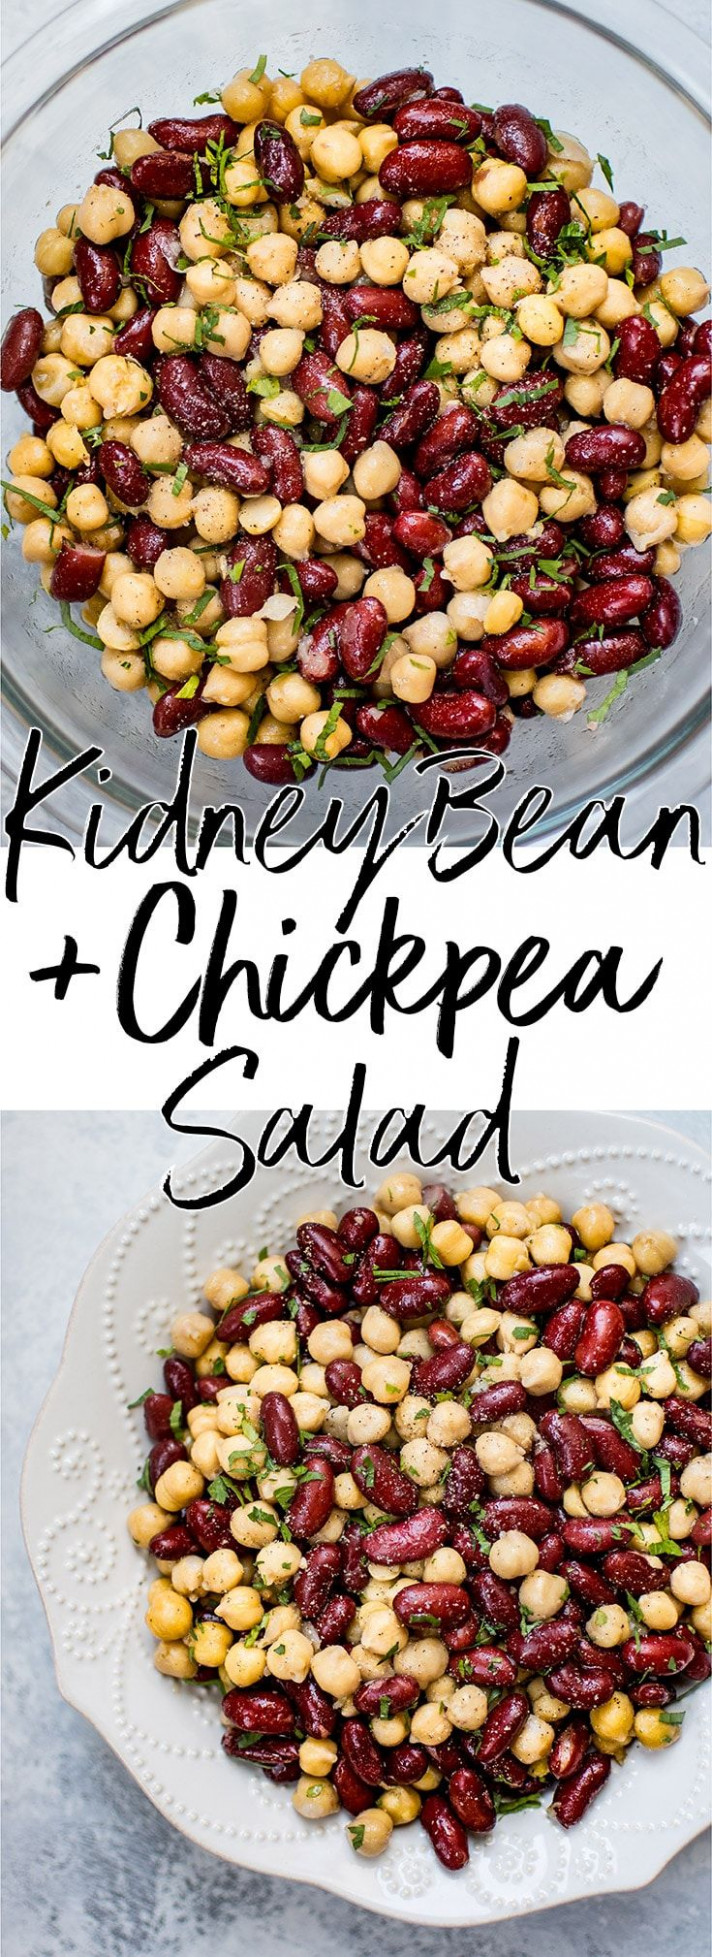 This kidney bean and chickpea salad is ridiculously easy with only 5 ingredients! Healthy, delicious, and ready in under 10 minu - healthy kidney bean recipes